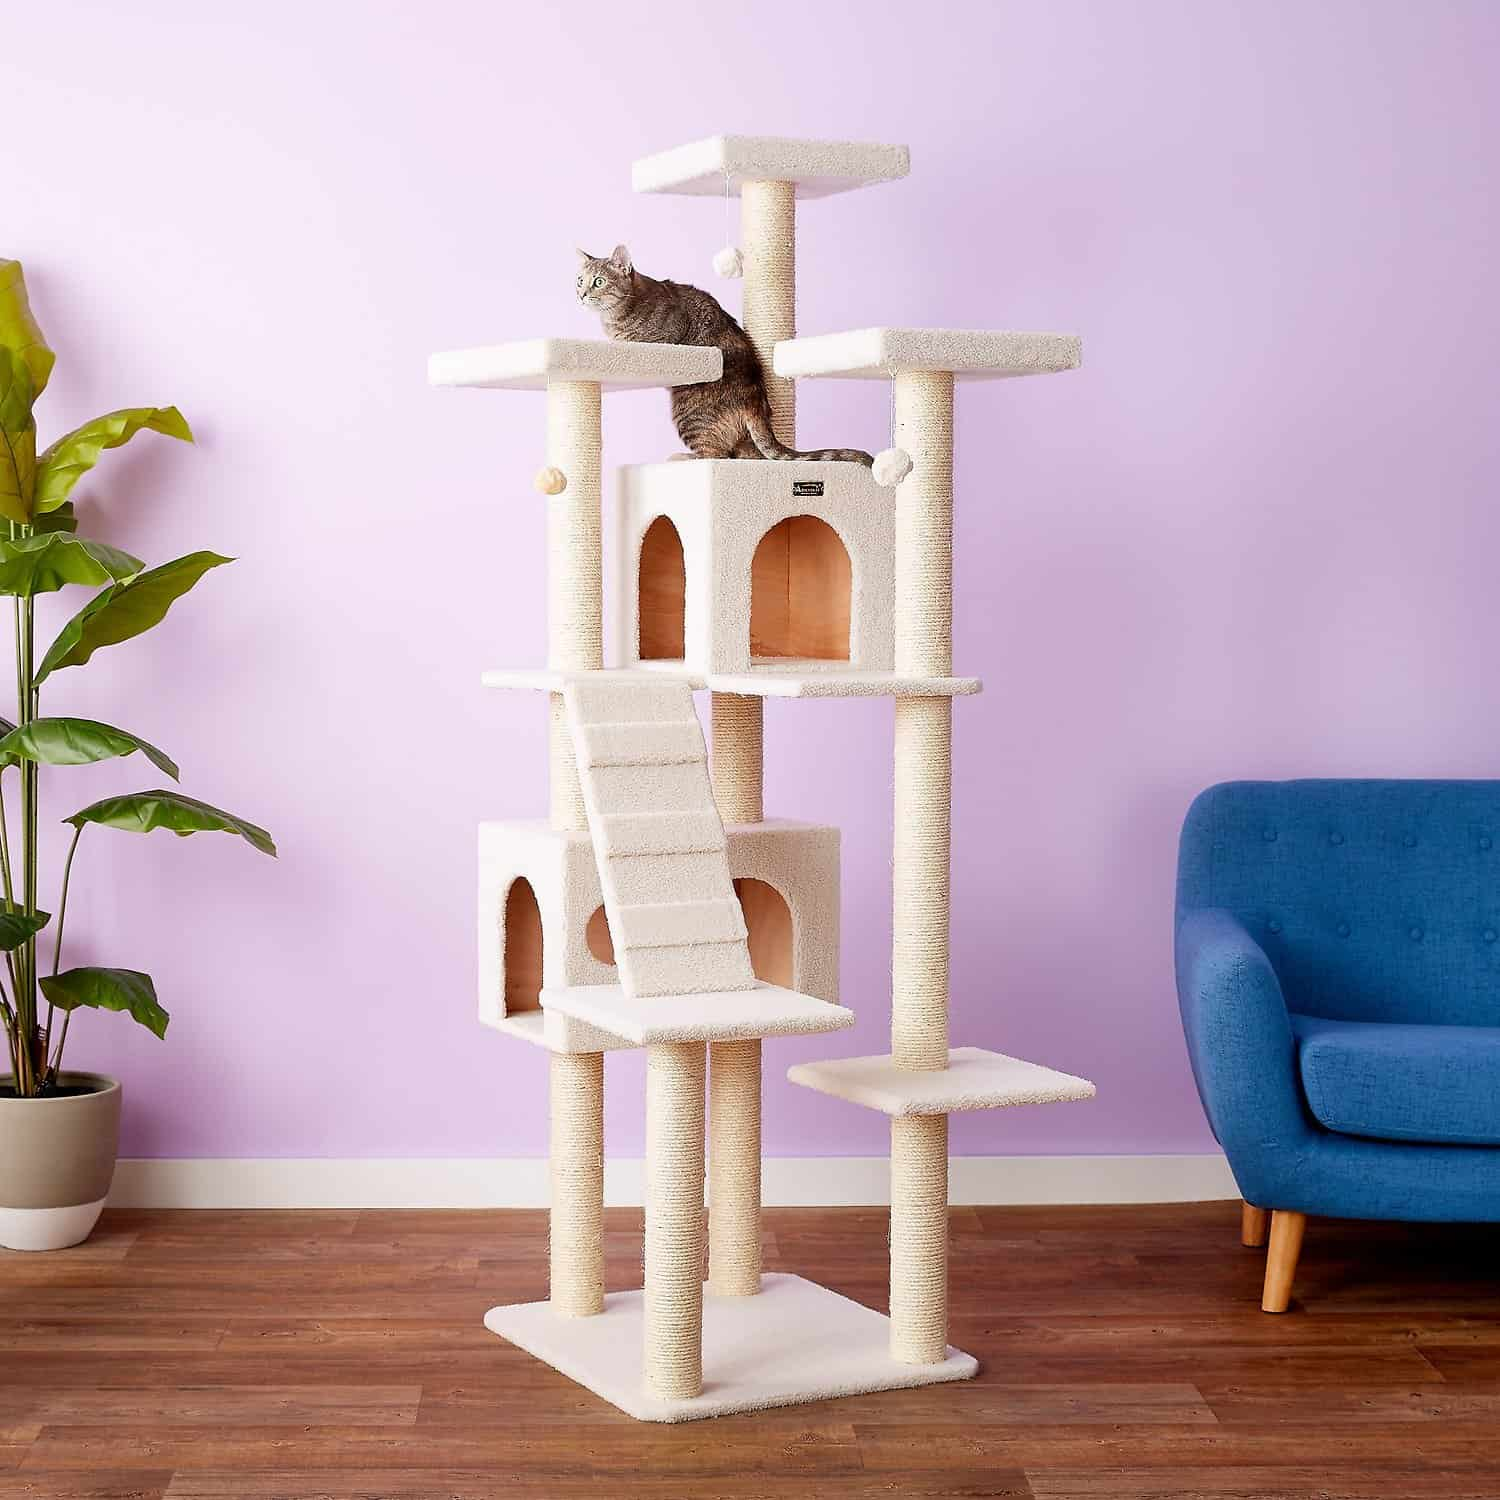 Best Cat Trees For Large Cats - Heavy Duty Big Sturdy Cat Towers [2021] 4